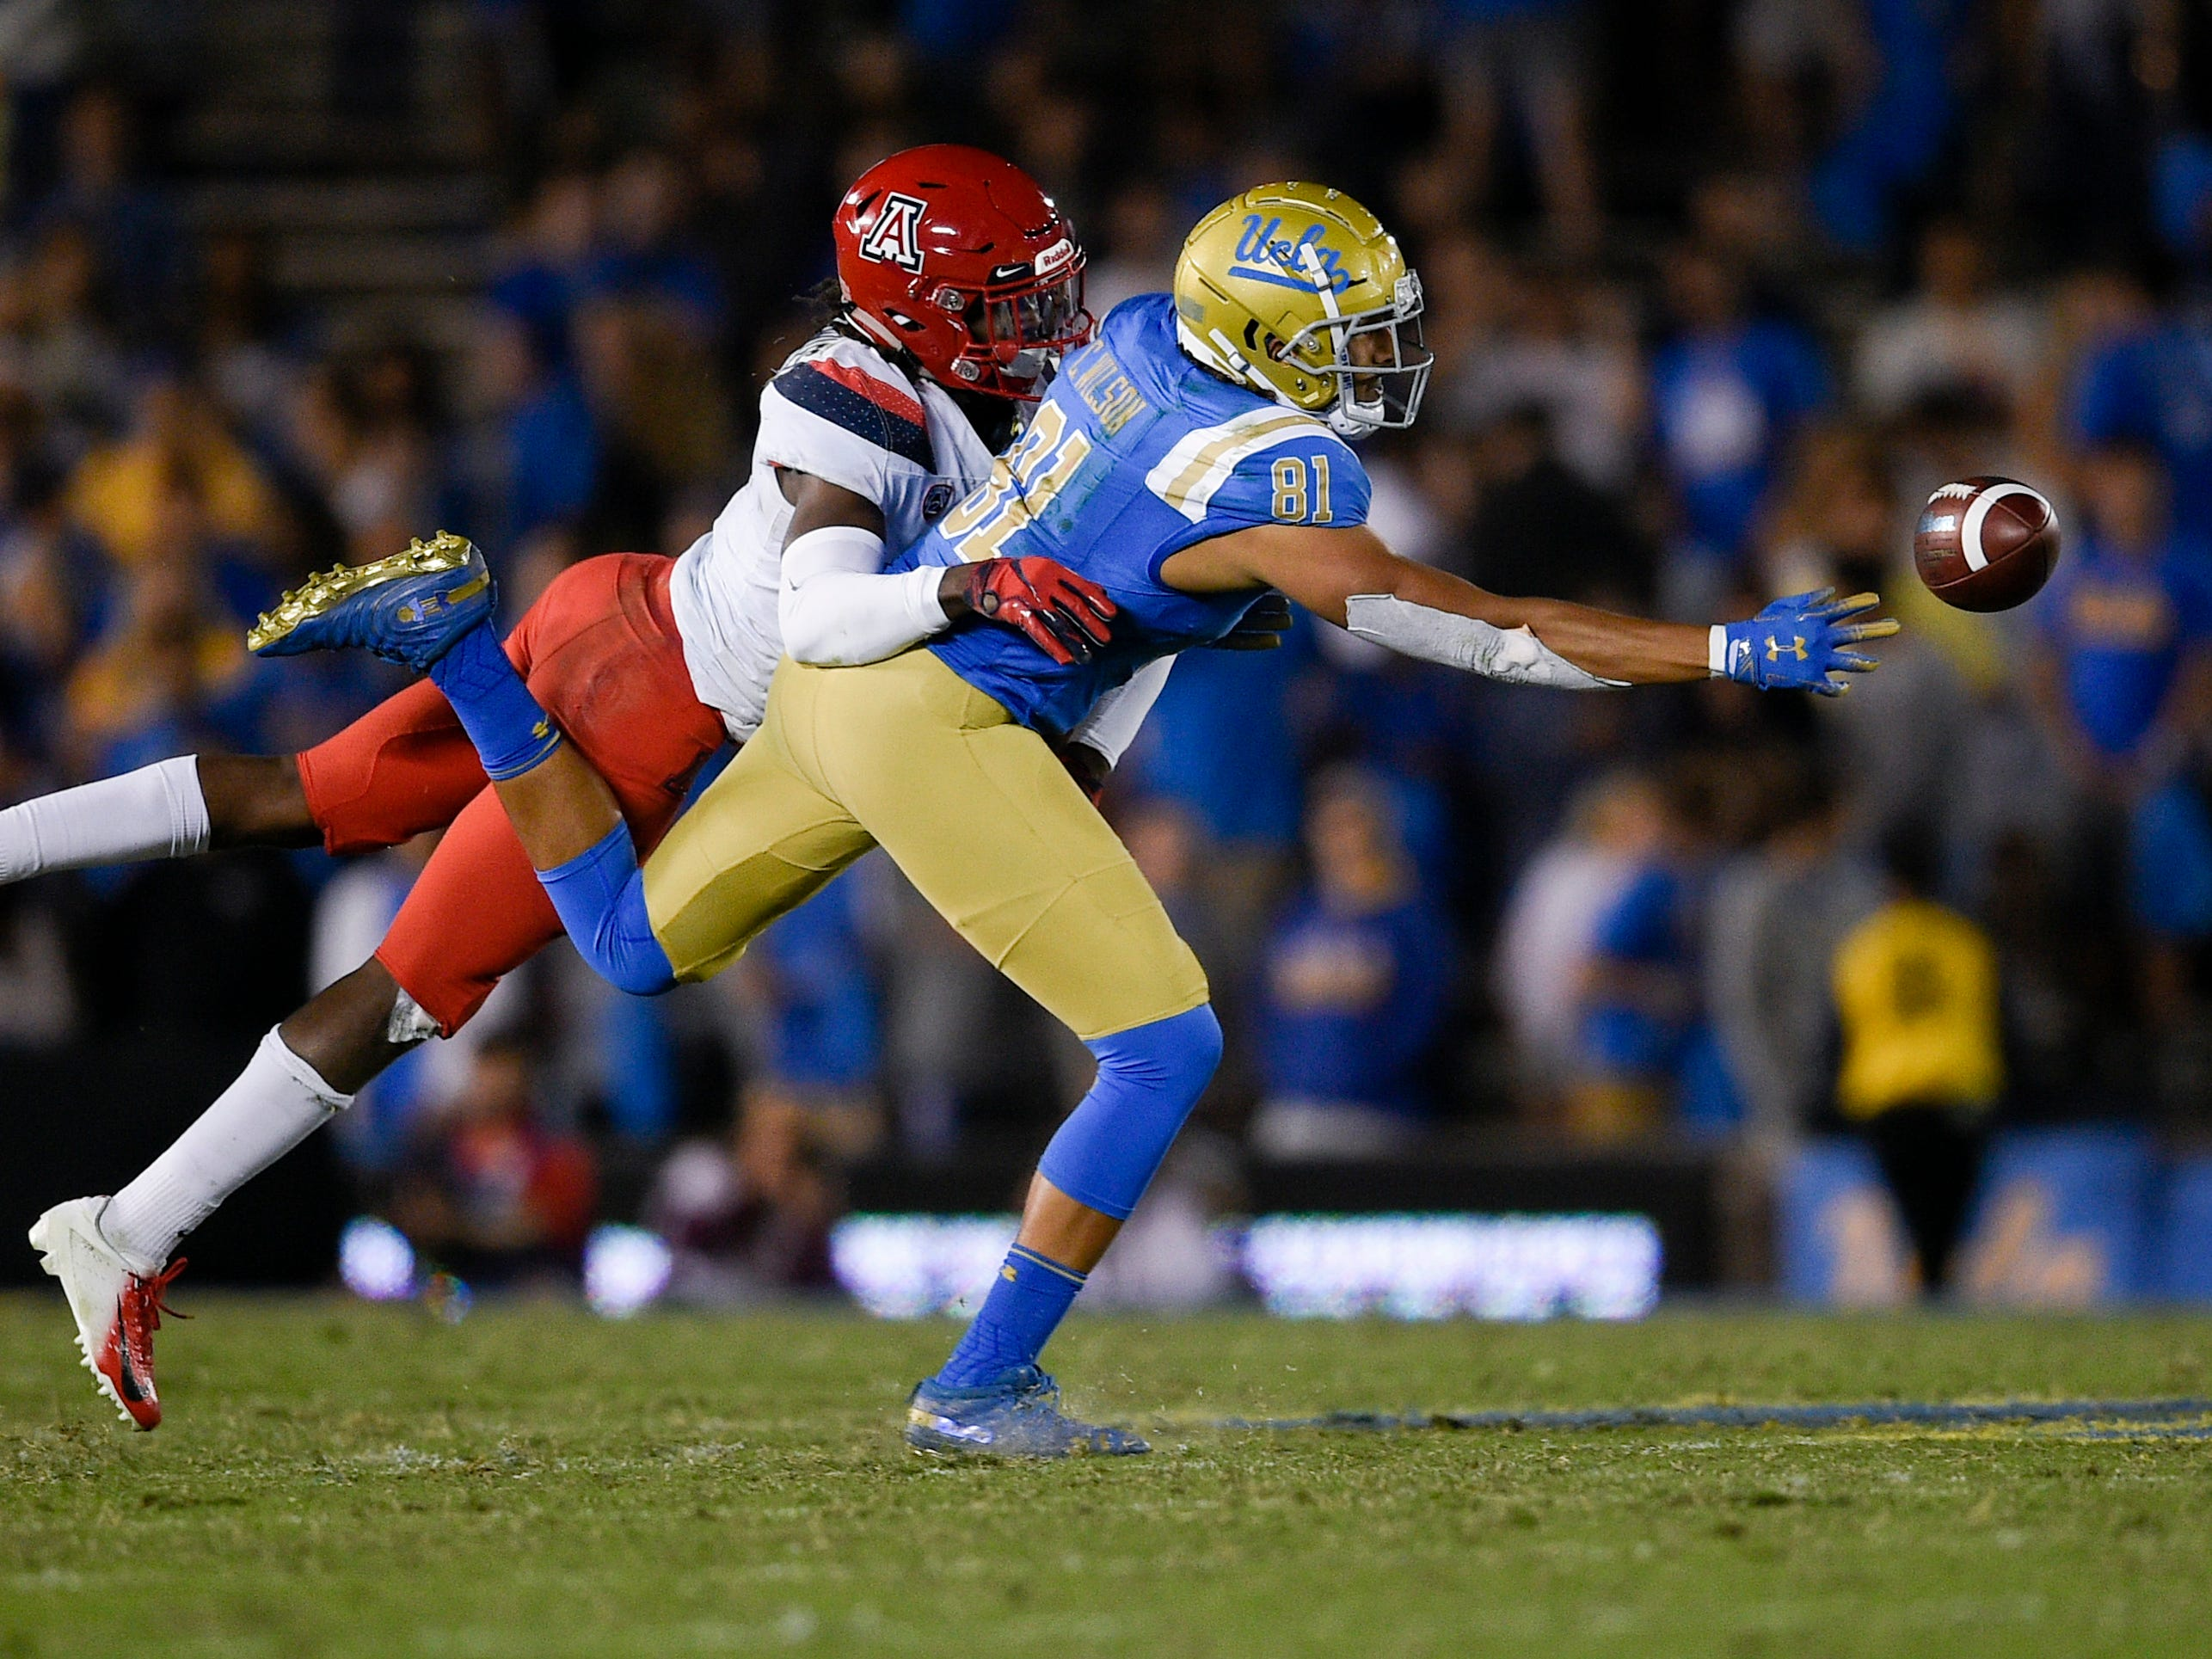 Oct 20, 2018; Pasadena, CA, USA; UCLA Bruins tight end Caleb Wilson (81) is unable to catch a pass defended by Arizona Wildcats safety Christian Young (5) during the second half at Rose Bowl. Mandatory Credit: Kelvin Kuo-USA TODAY Sports